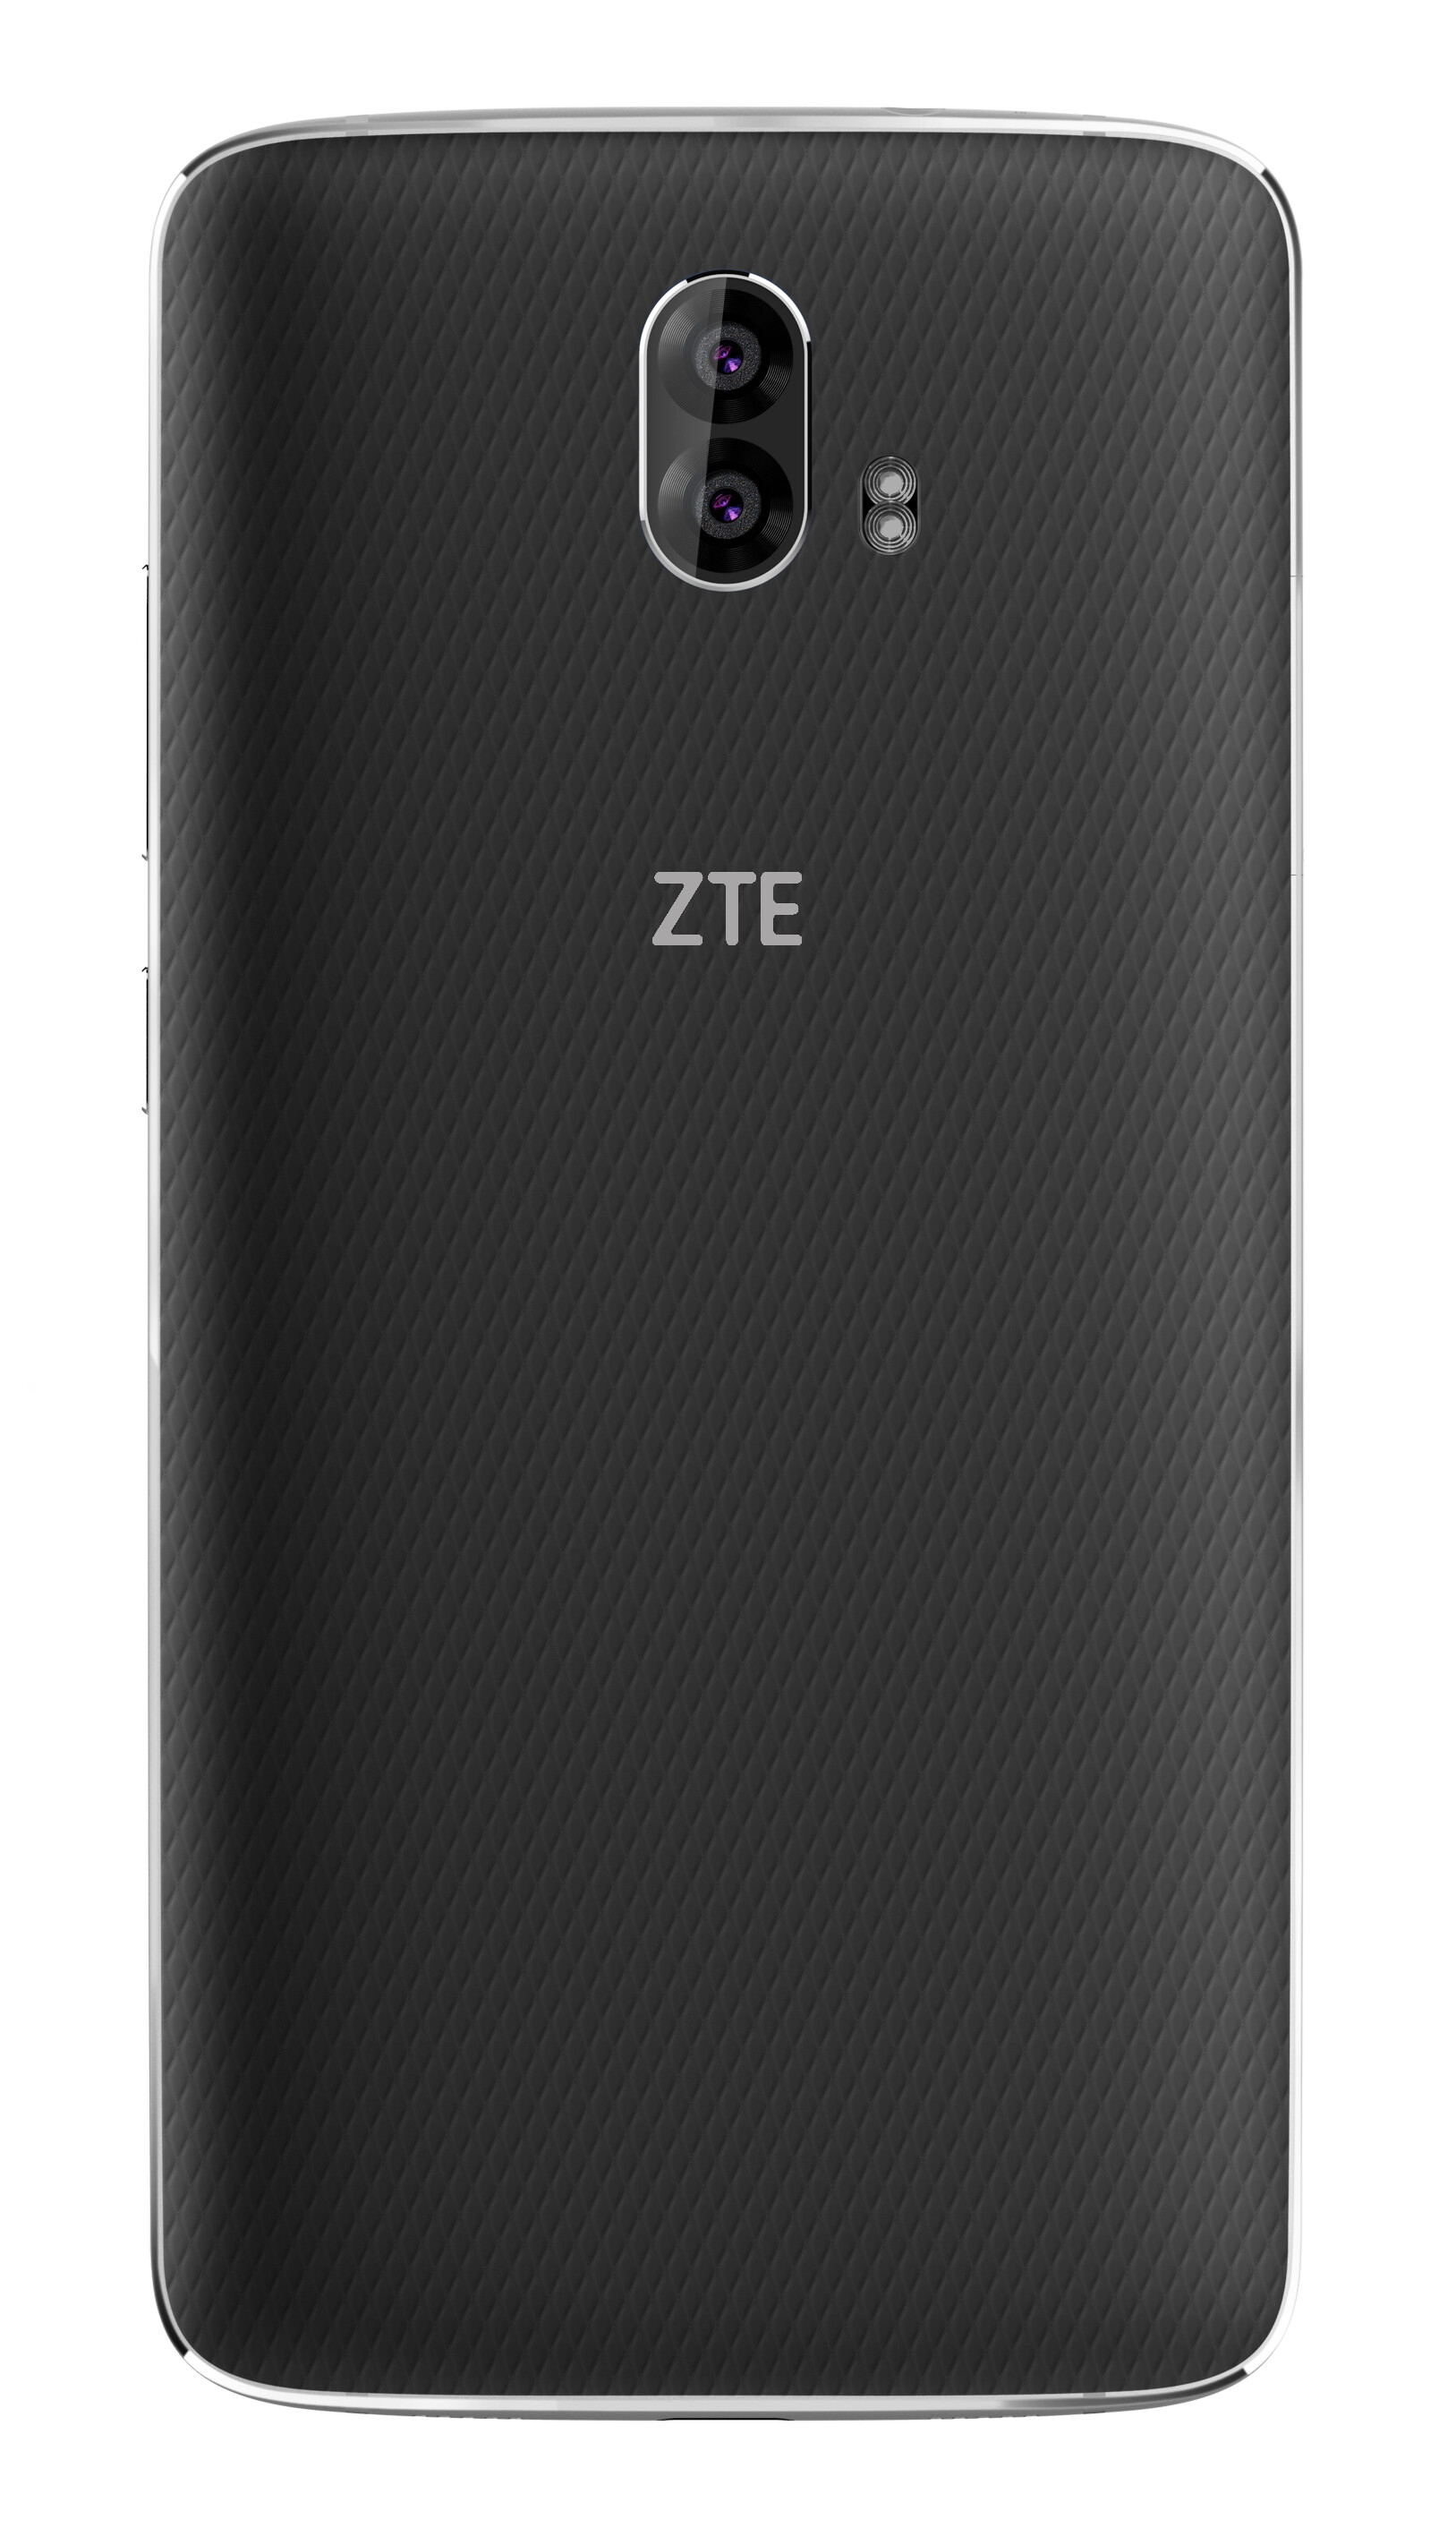 YRFF Classic leather Flip Phone Cases Cover For ZTE Axon 7